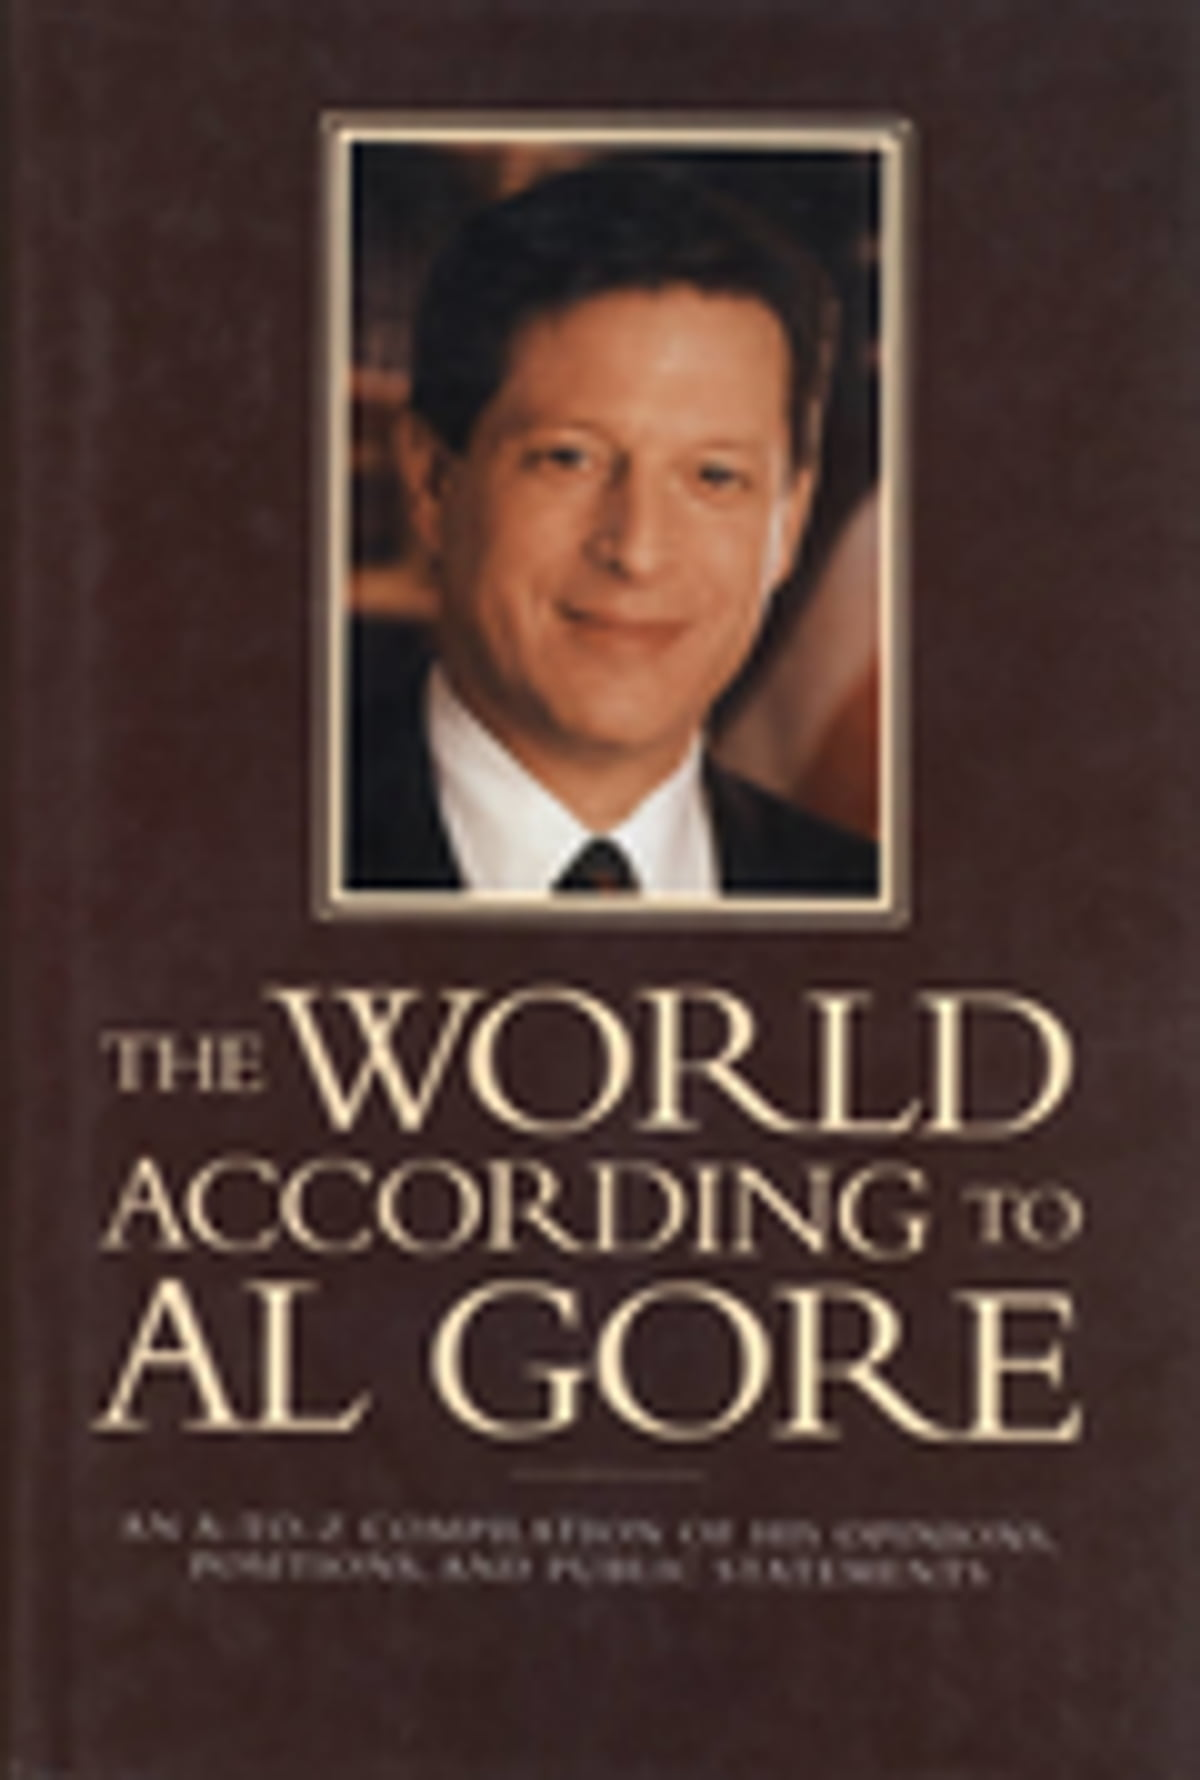 the life and political career of al gore Al gore is gettinghotter the story of the former veep's life as a climate crusader is the story of almostsbut not now this month he stars in the sequel to his game-changing 2006 film, an.